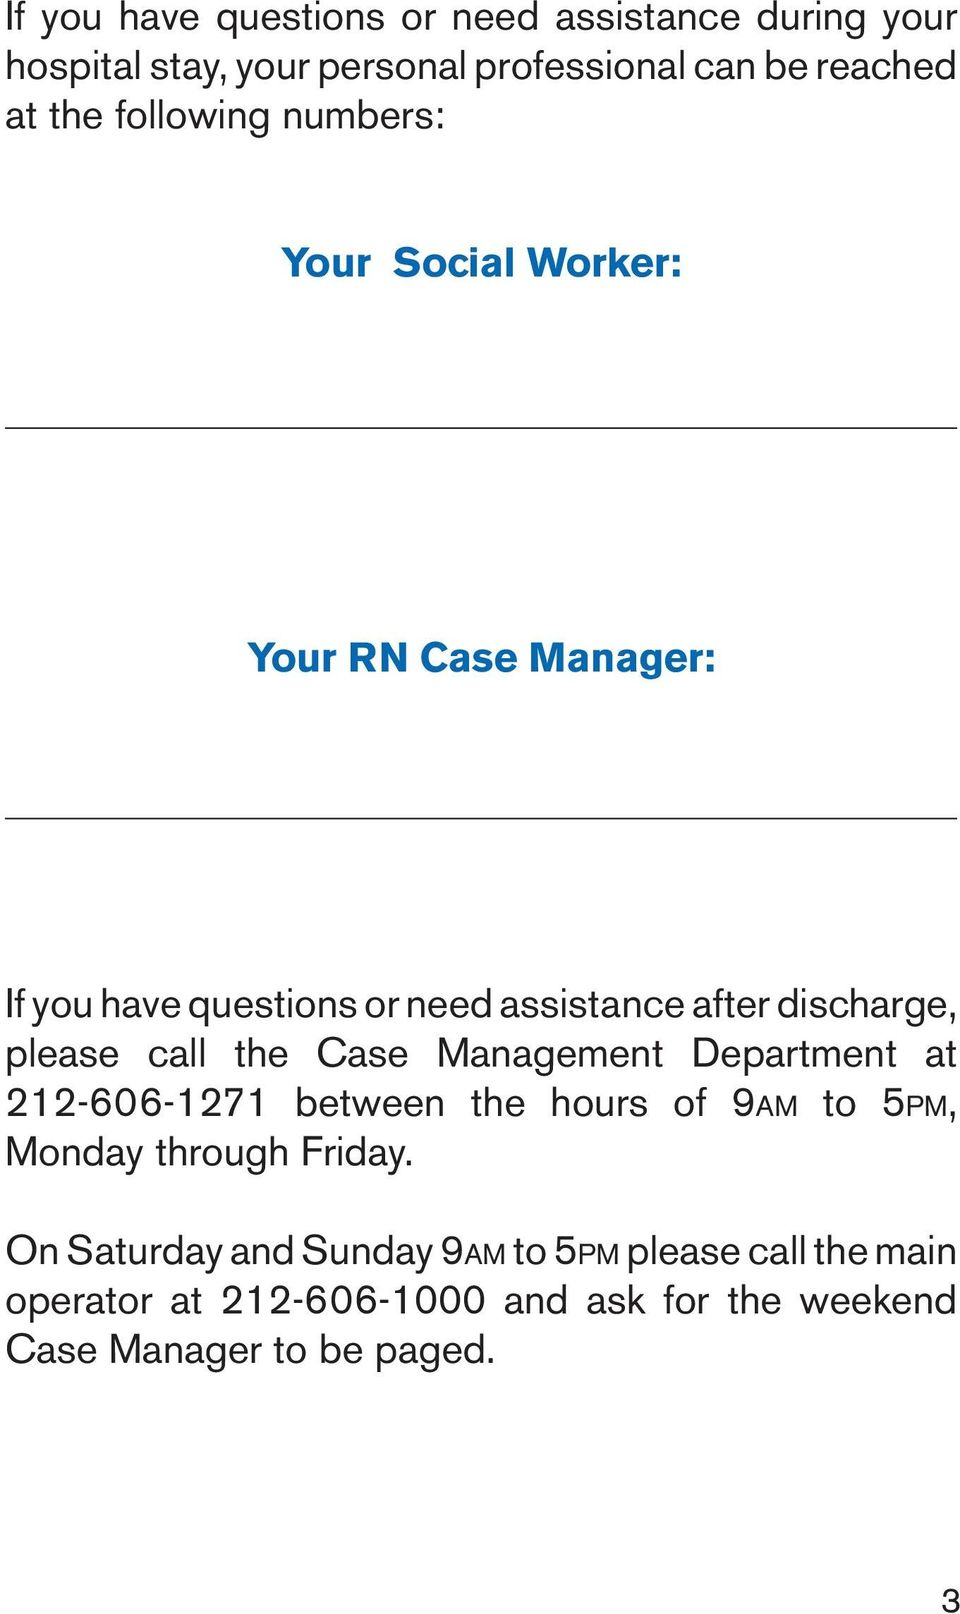 please call the Case Management Department at 212-606-1271 between the hours of 9a m to 5p m, Monday through Friday.